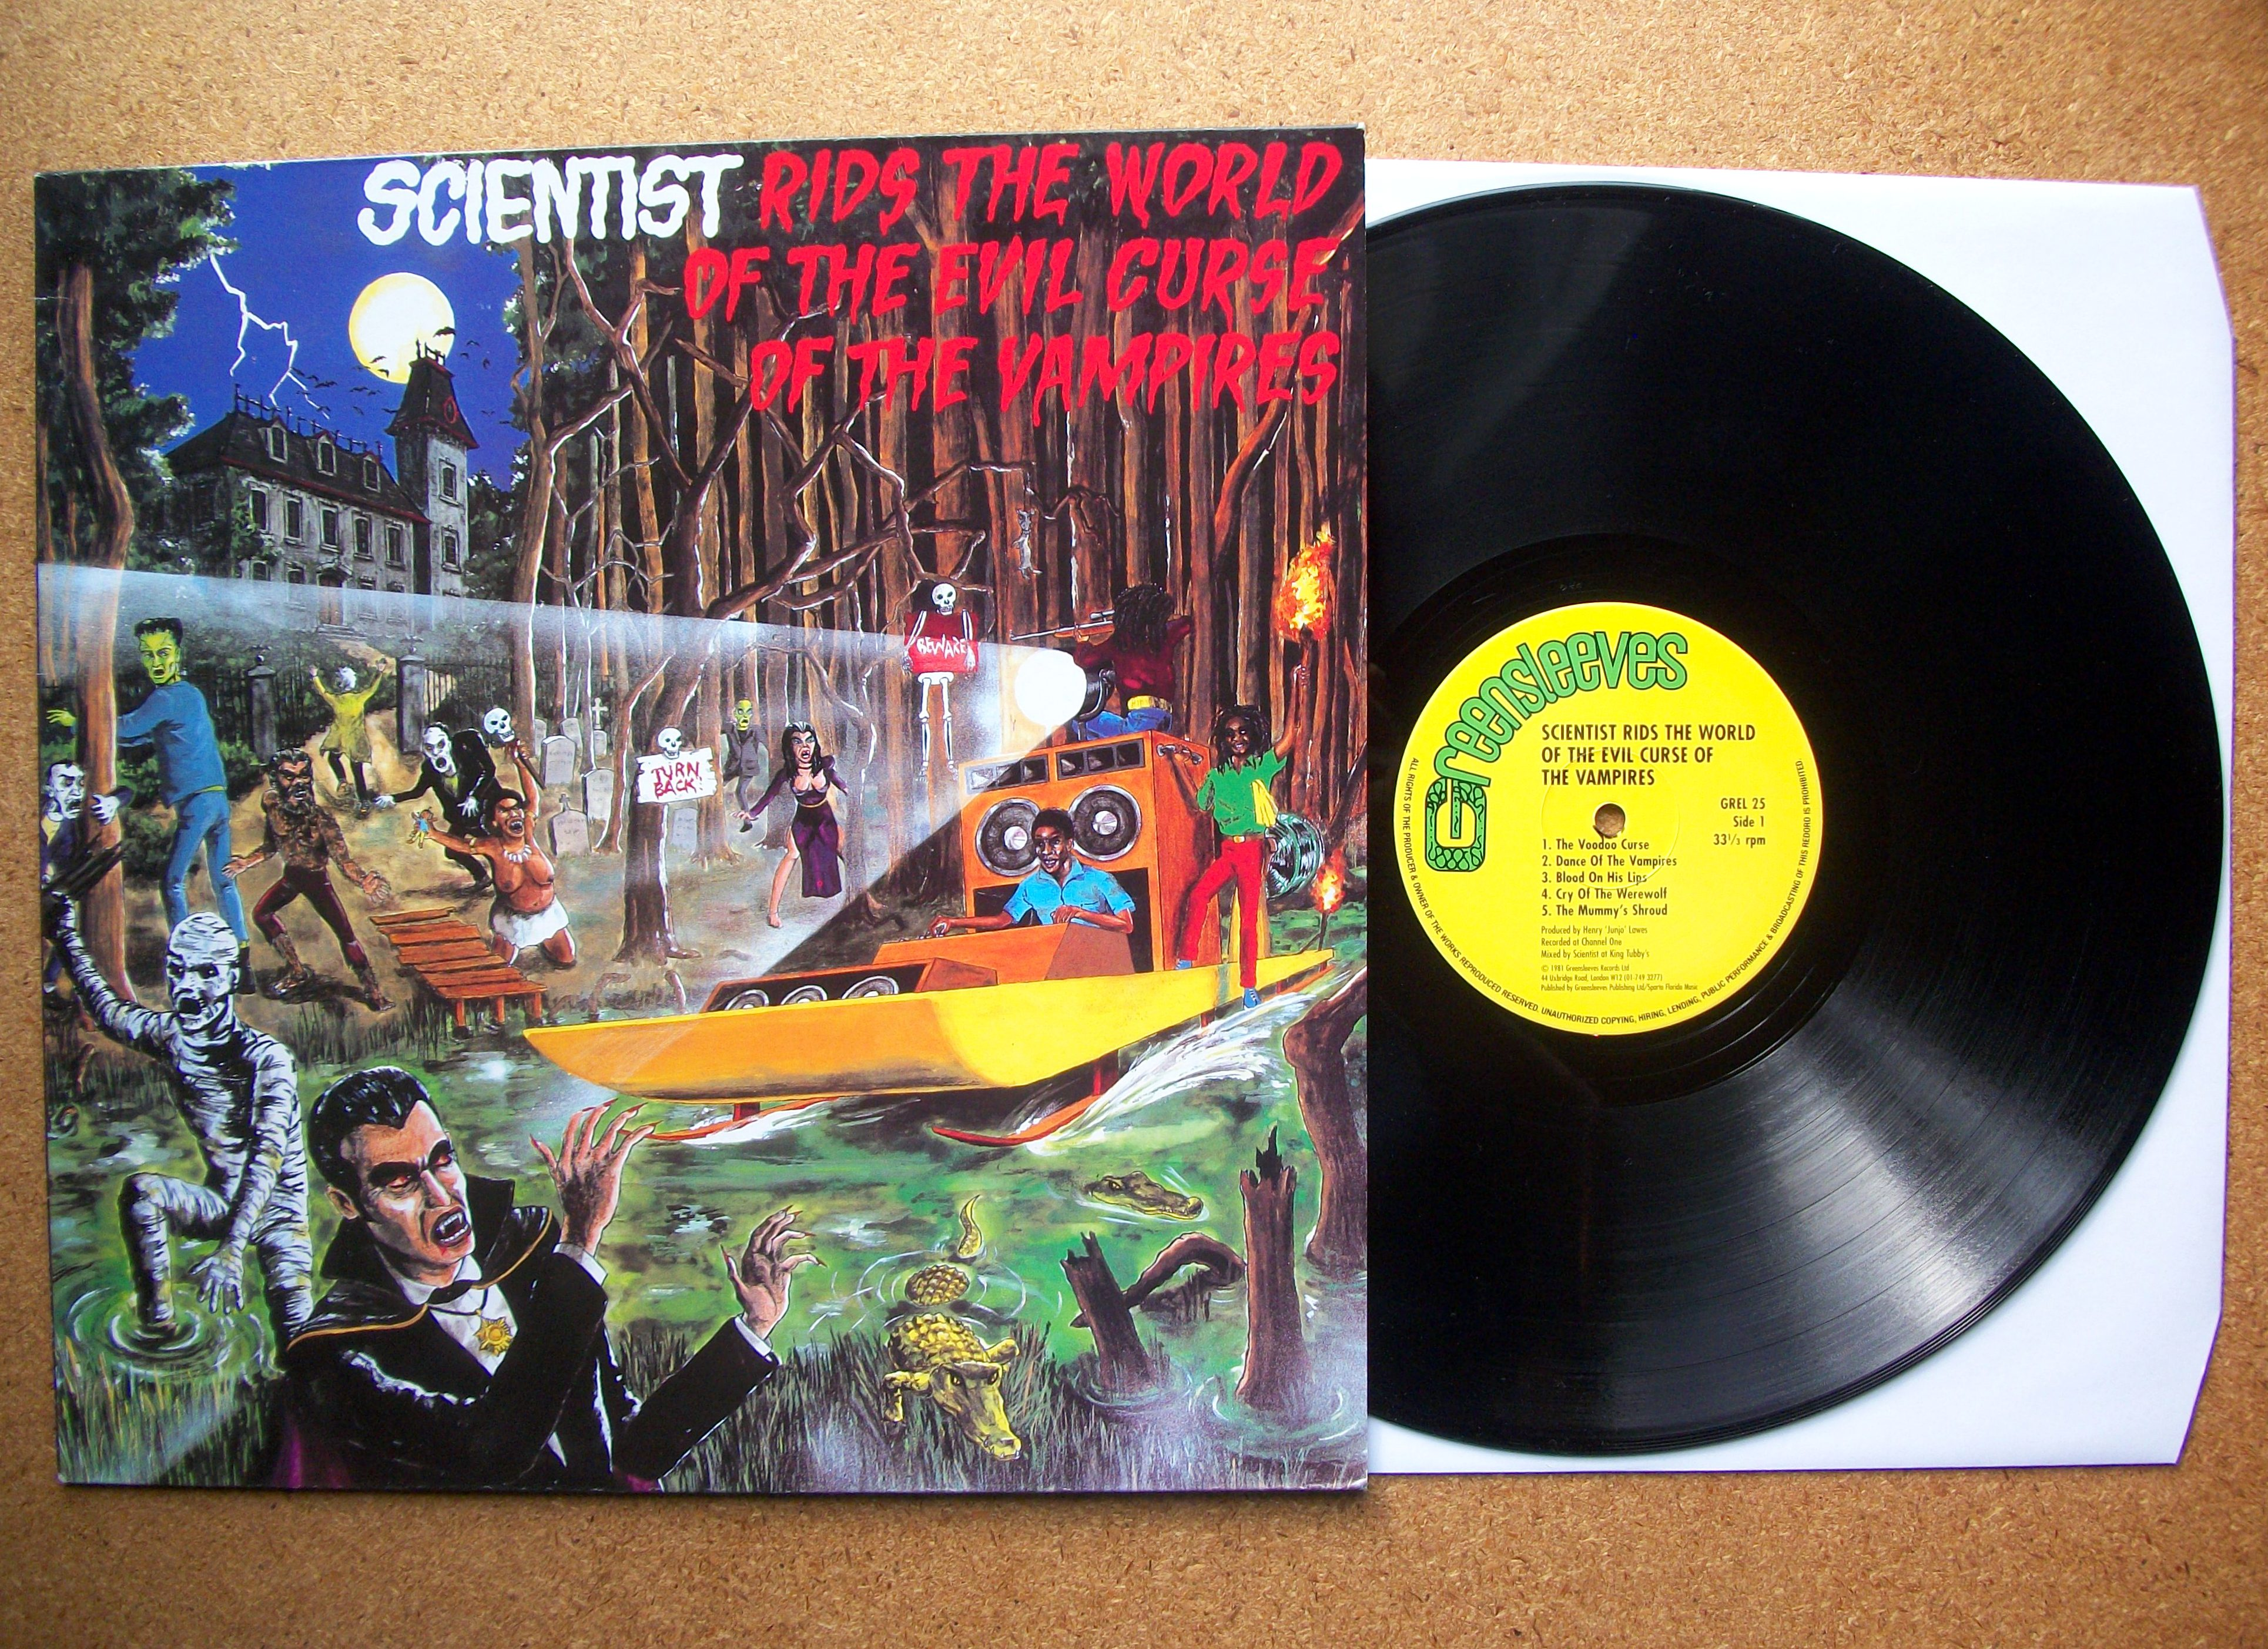 SINISTER VINYL COLLECTION: SCIENTIST – RIDS THE WORLD OF THE EVIL